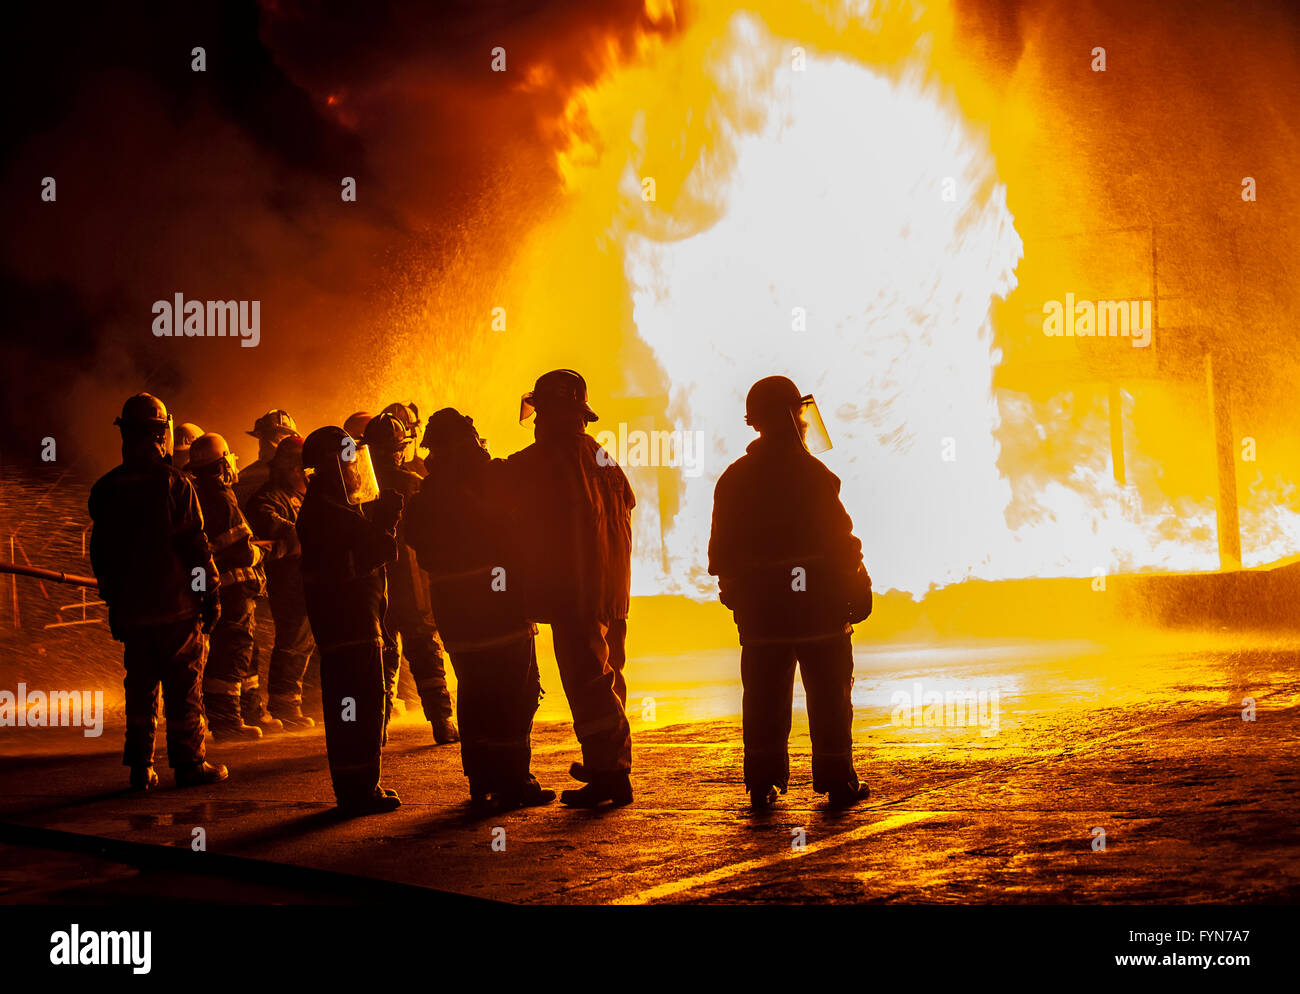 Firefighters observing structural fire - Stock Image